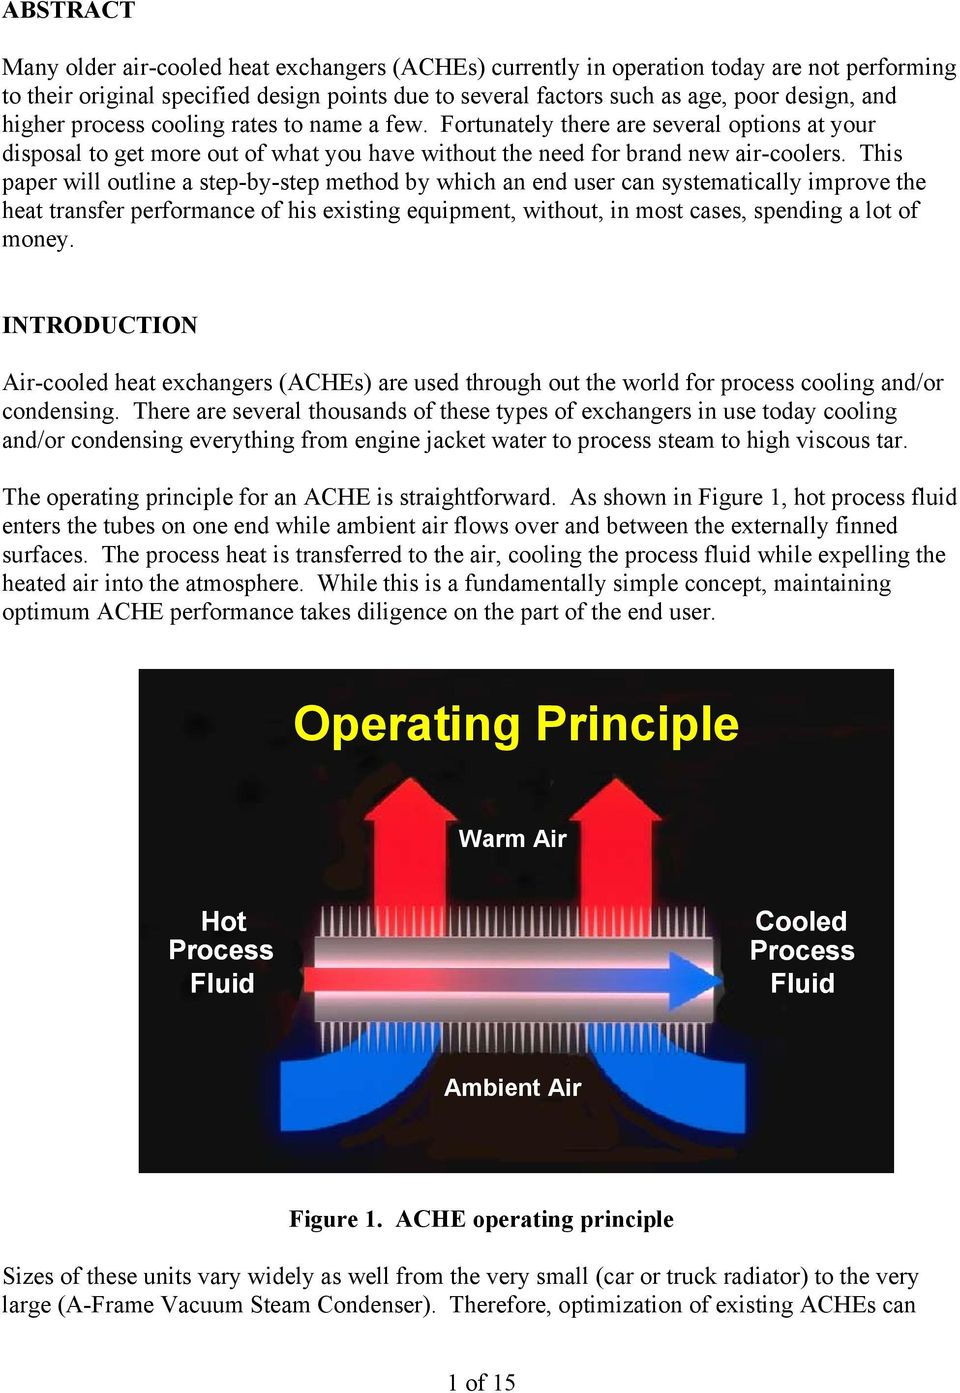 COOLING TECHNOLOGY INSTITUTE - PDF